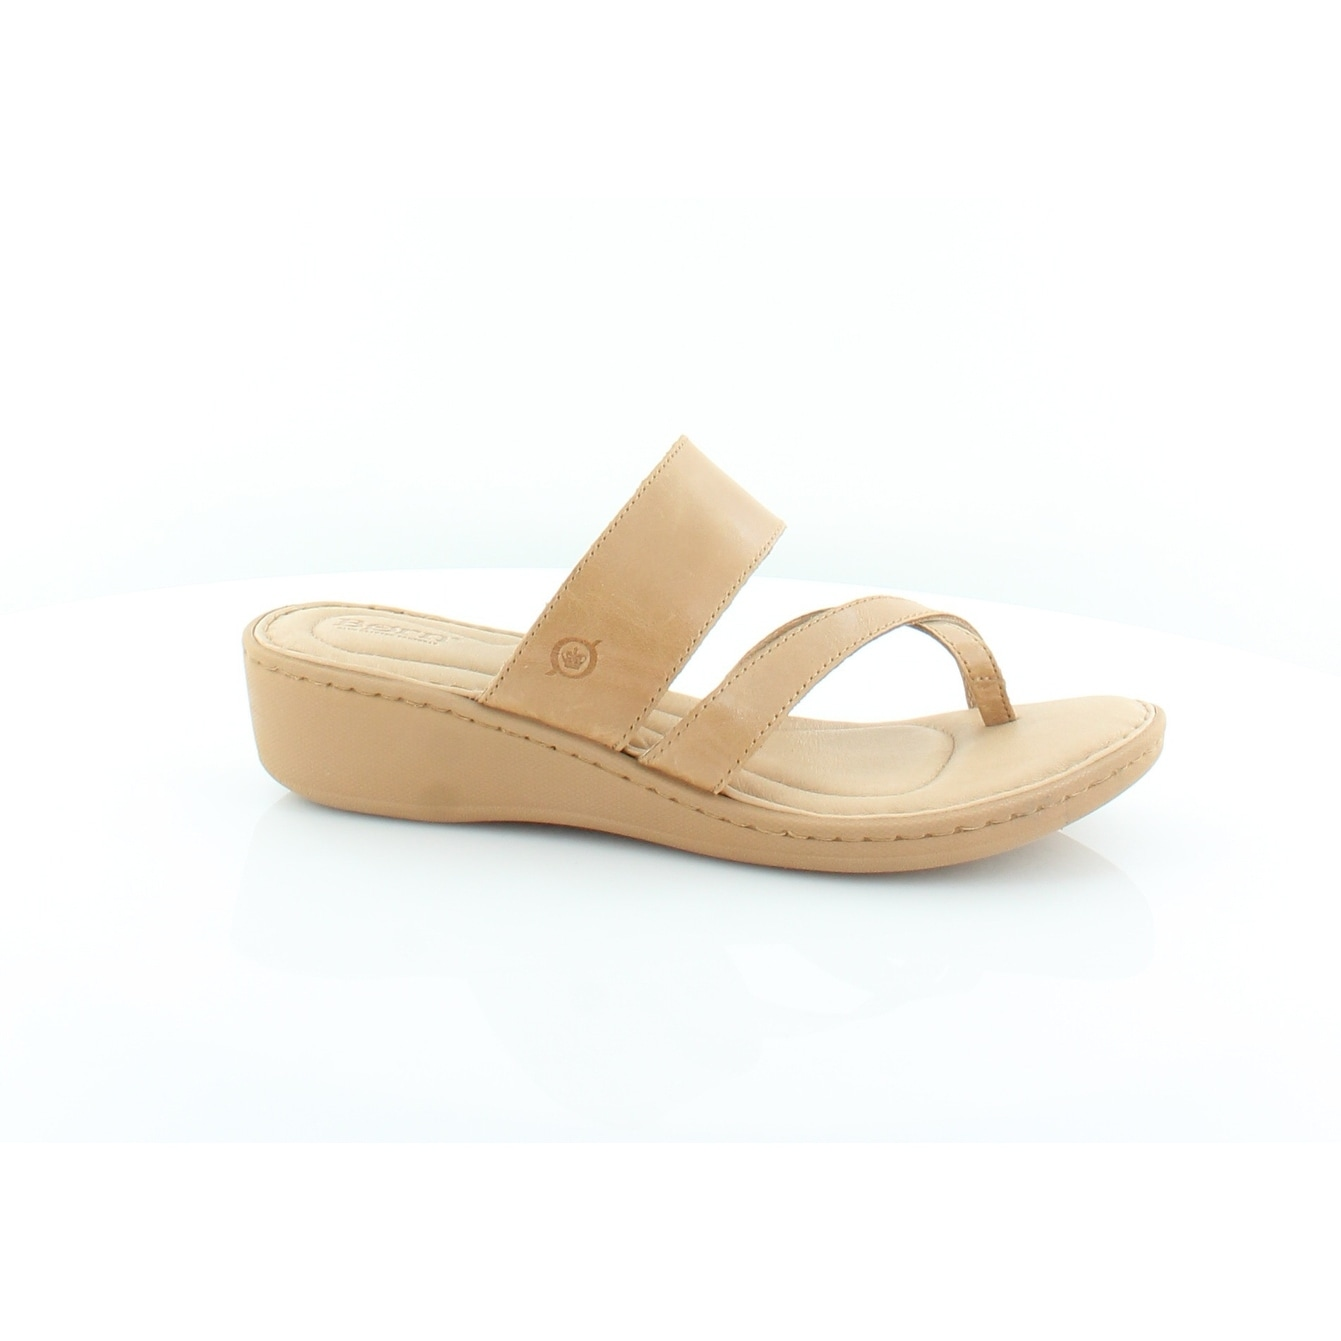 673d8f891611 Shop Born Siene Women s Sandals Tan - Free Shipping Today - Overstock -  27345411